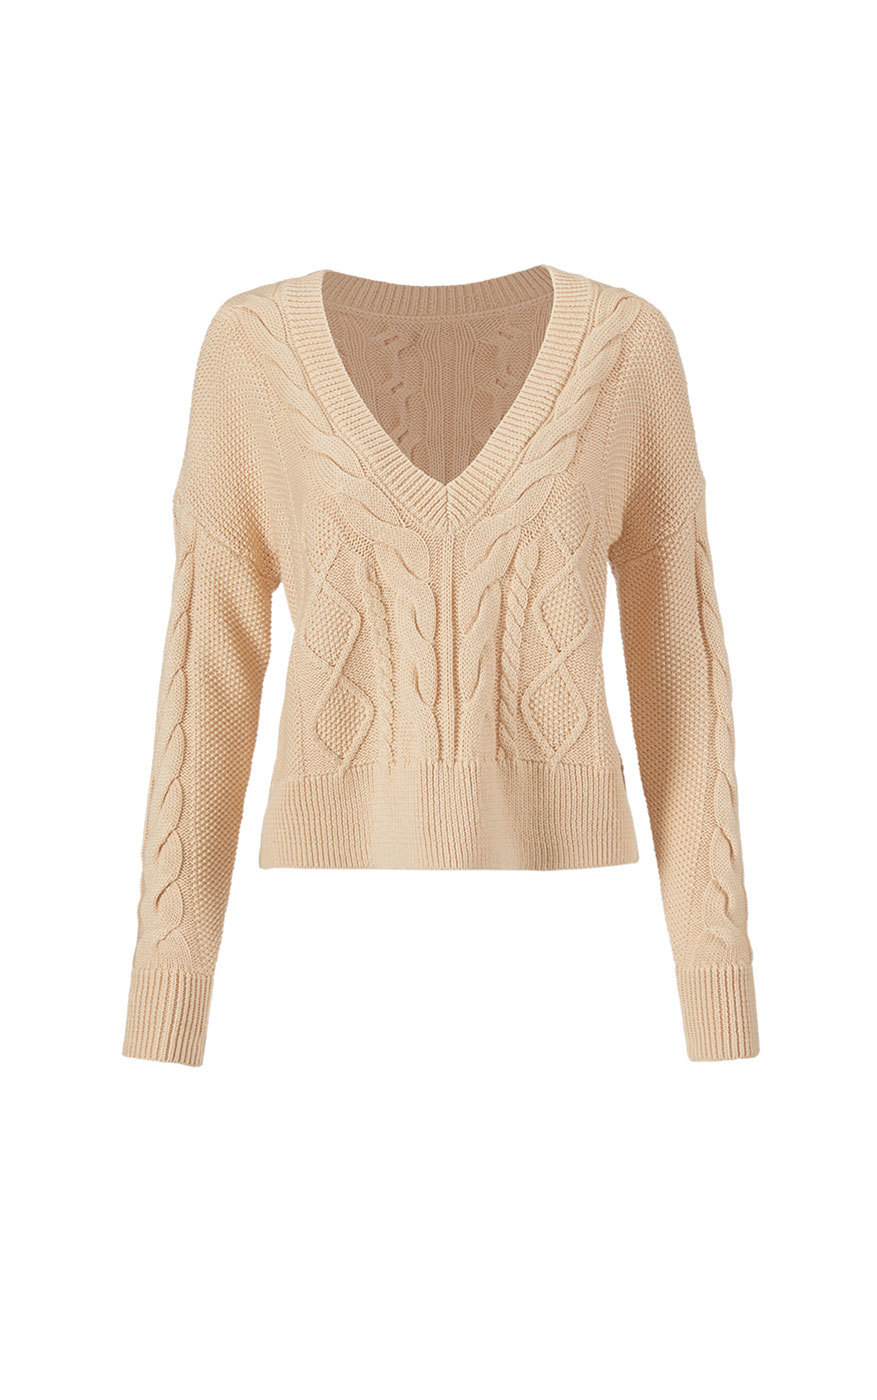 cabi's Cropped Cable Pullover